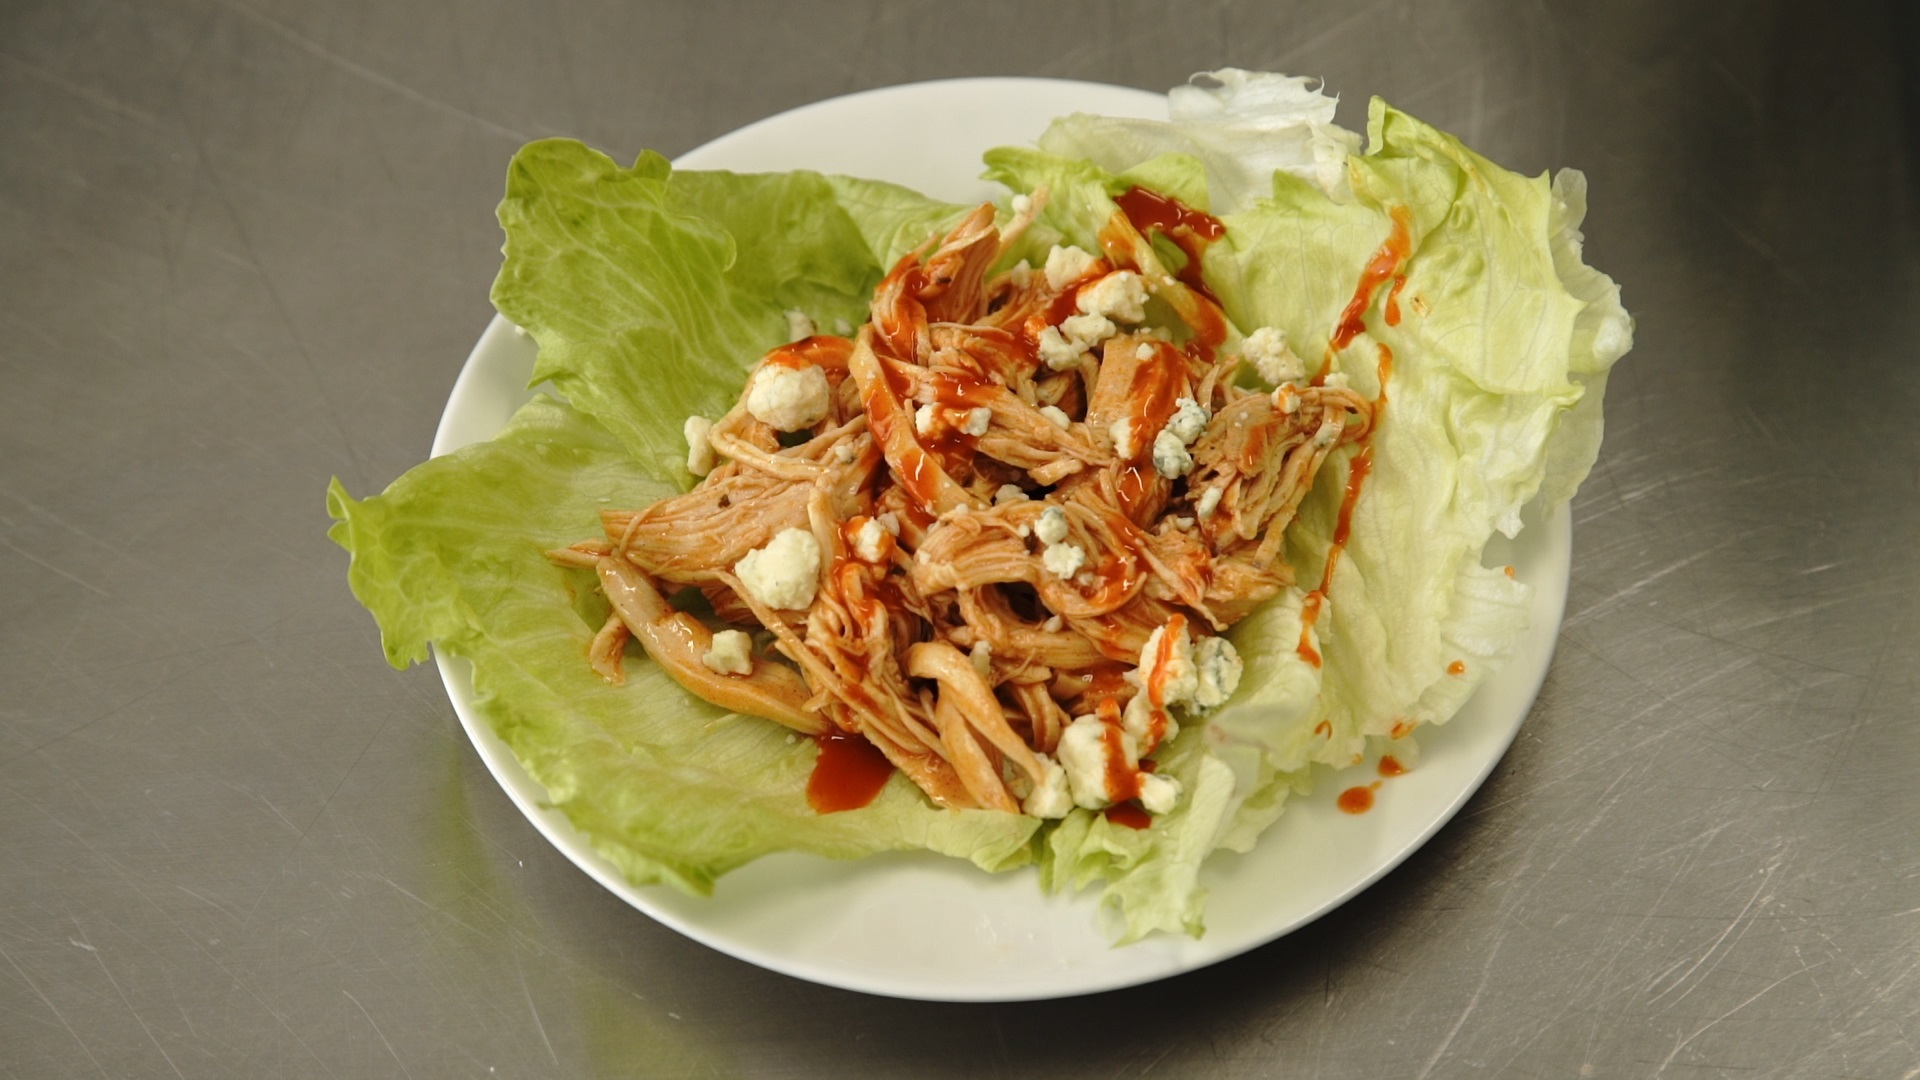 shredded buffalo chicken topped with hot sauce and crumbled blue cheese in a lettuce wrap